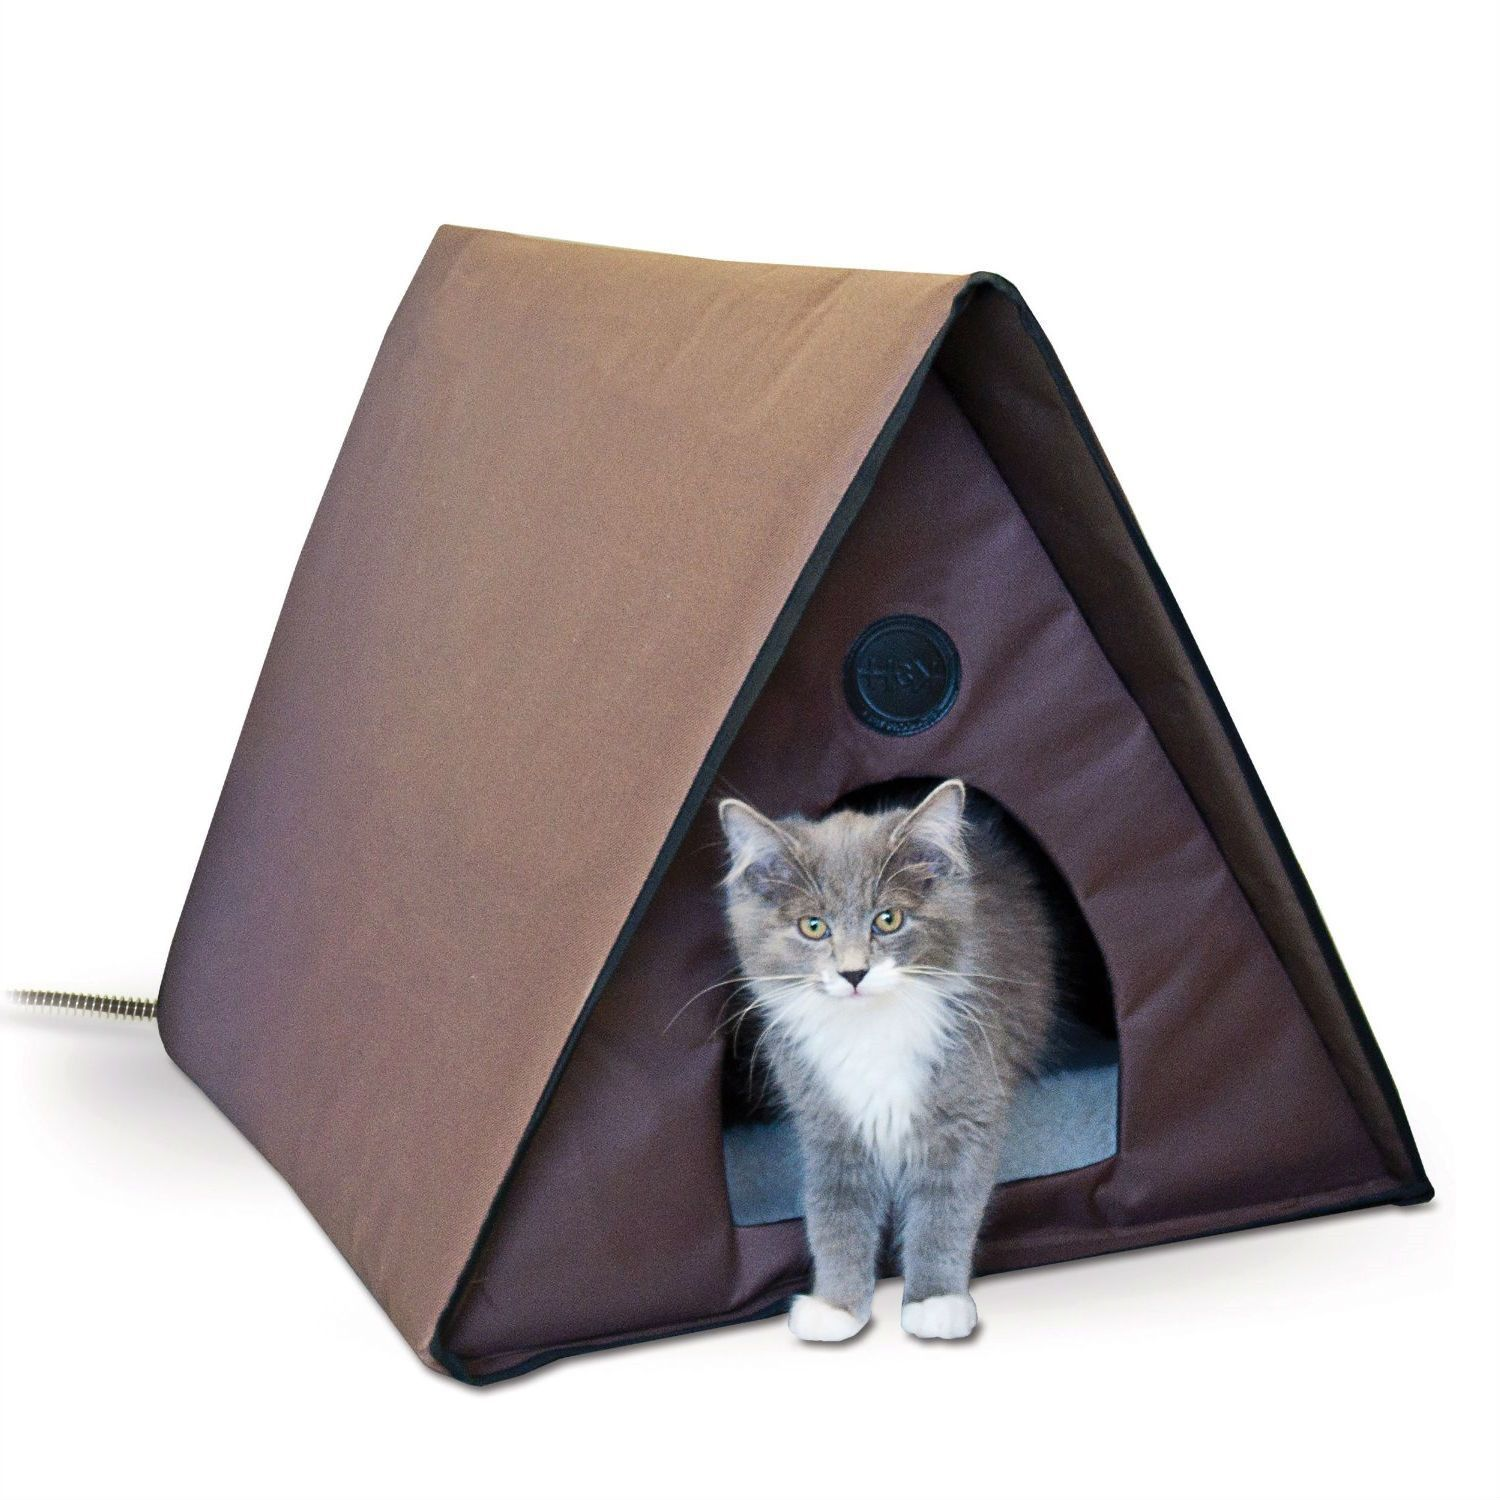 Heated Outdoor Cat House Shelter Waterproof Weather